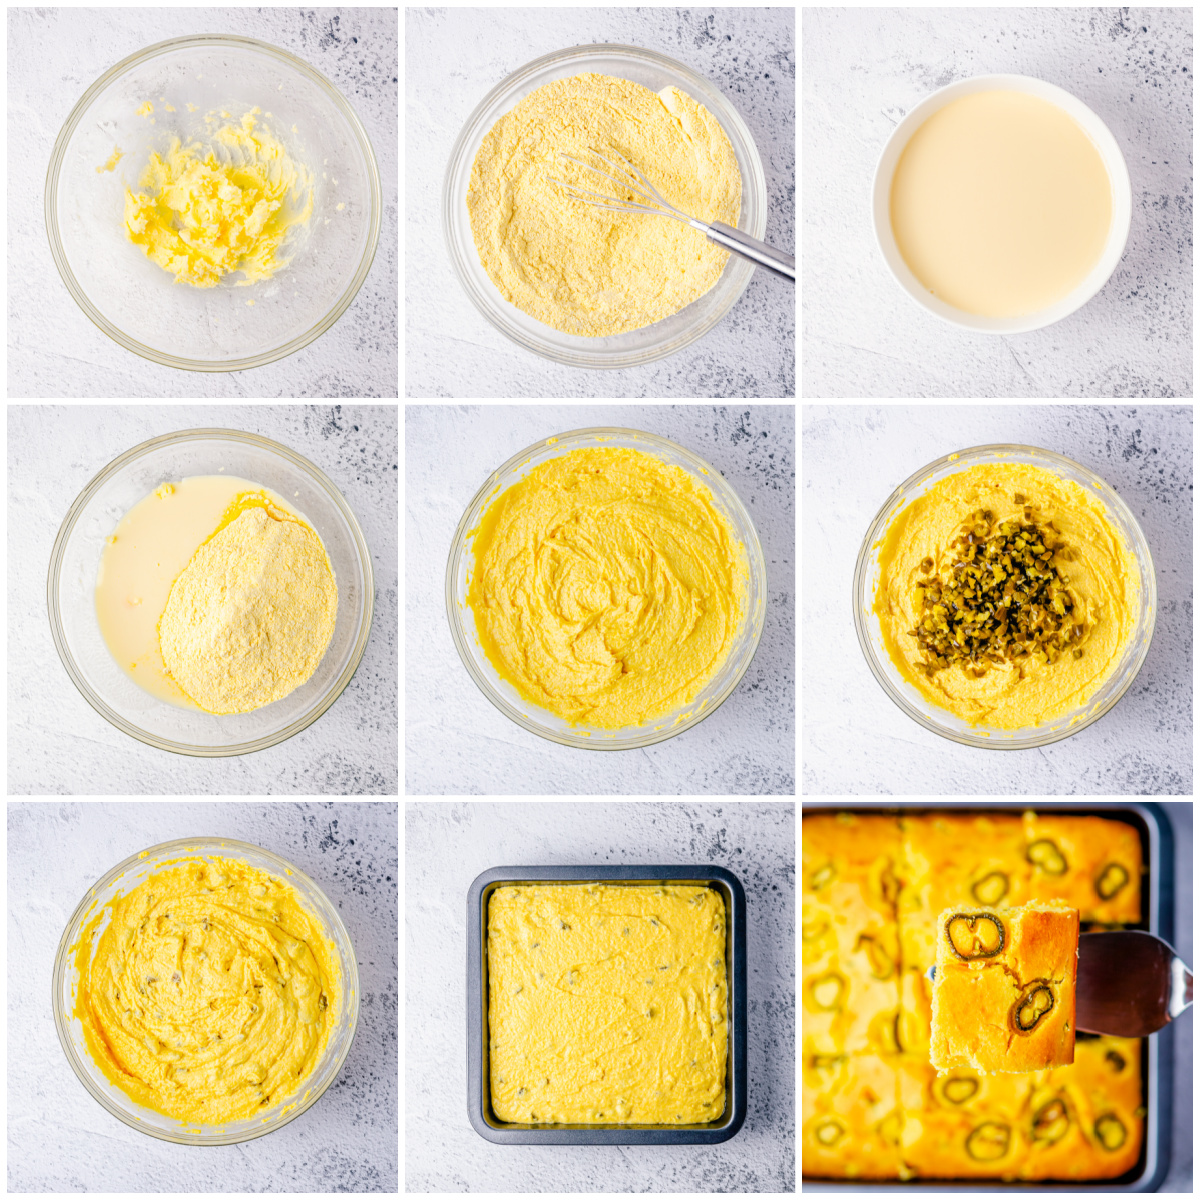 Step by step photos on how to make Jalapeno Cornbread.